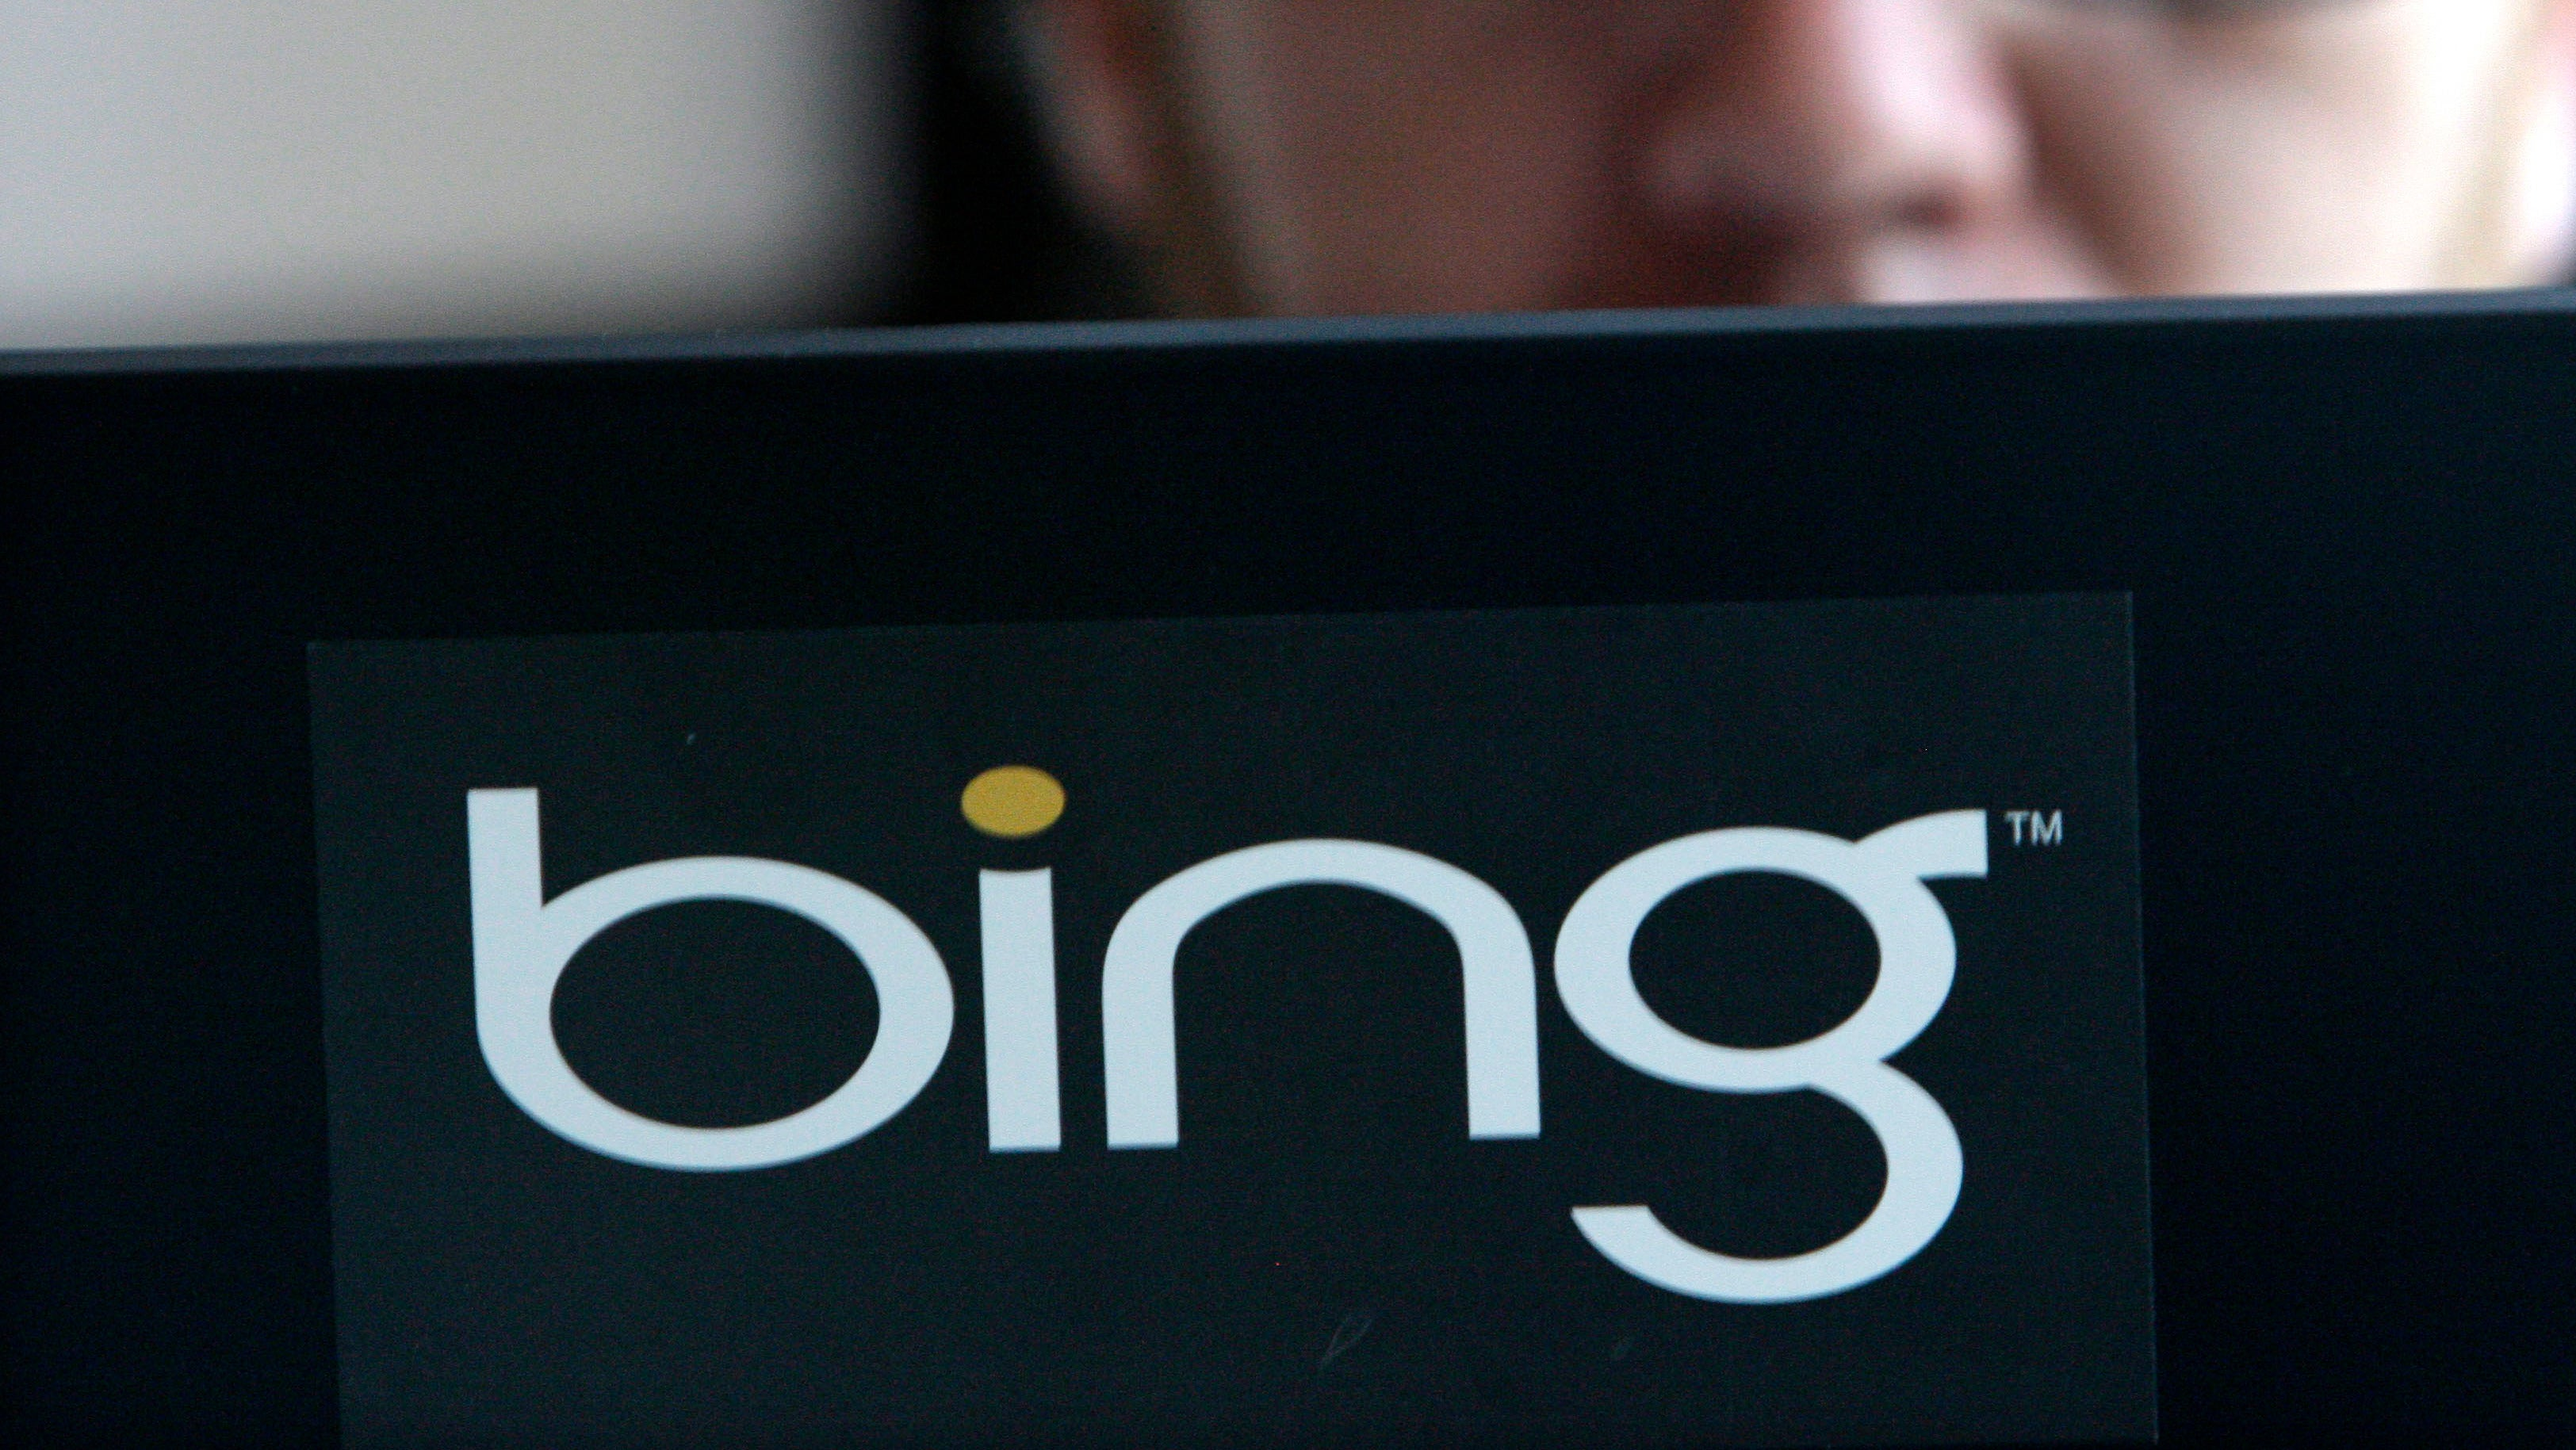 China May Have Blocked Microsoft's Bing In Latest Censorship Play: Report